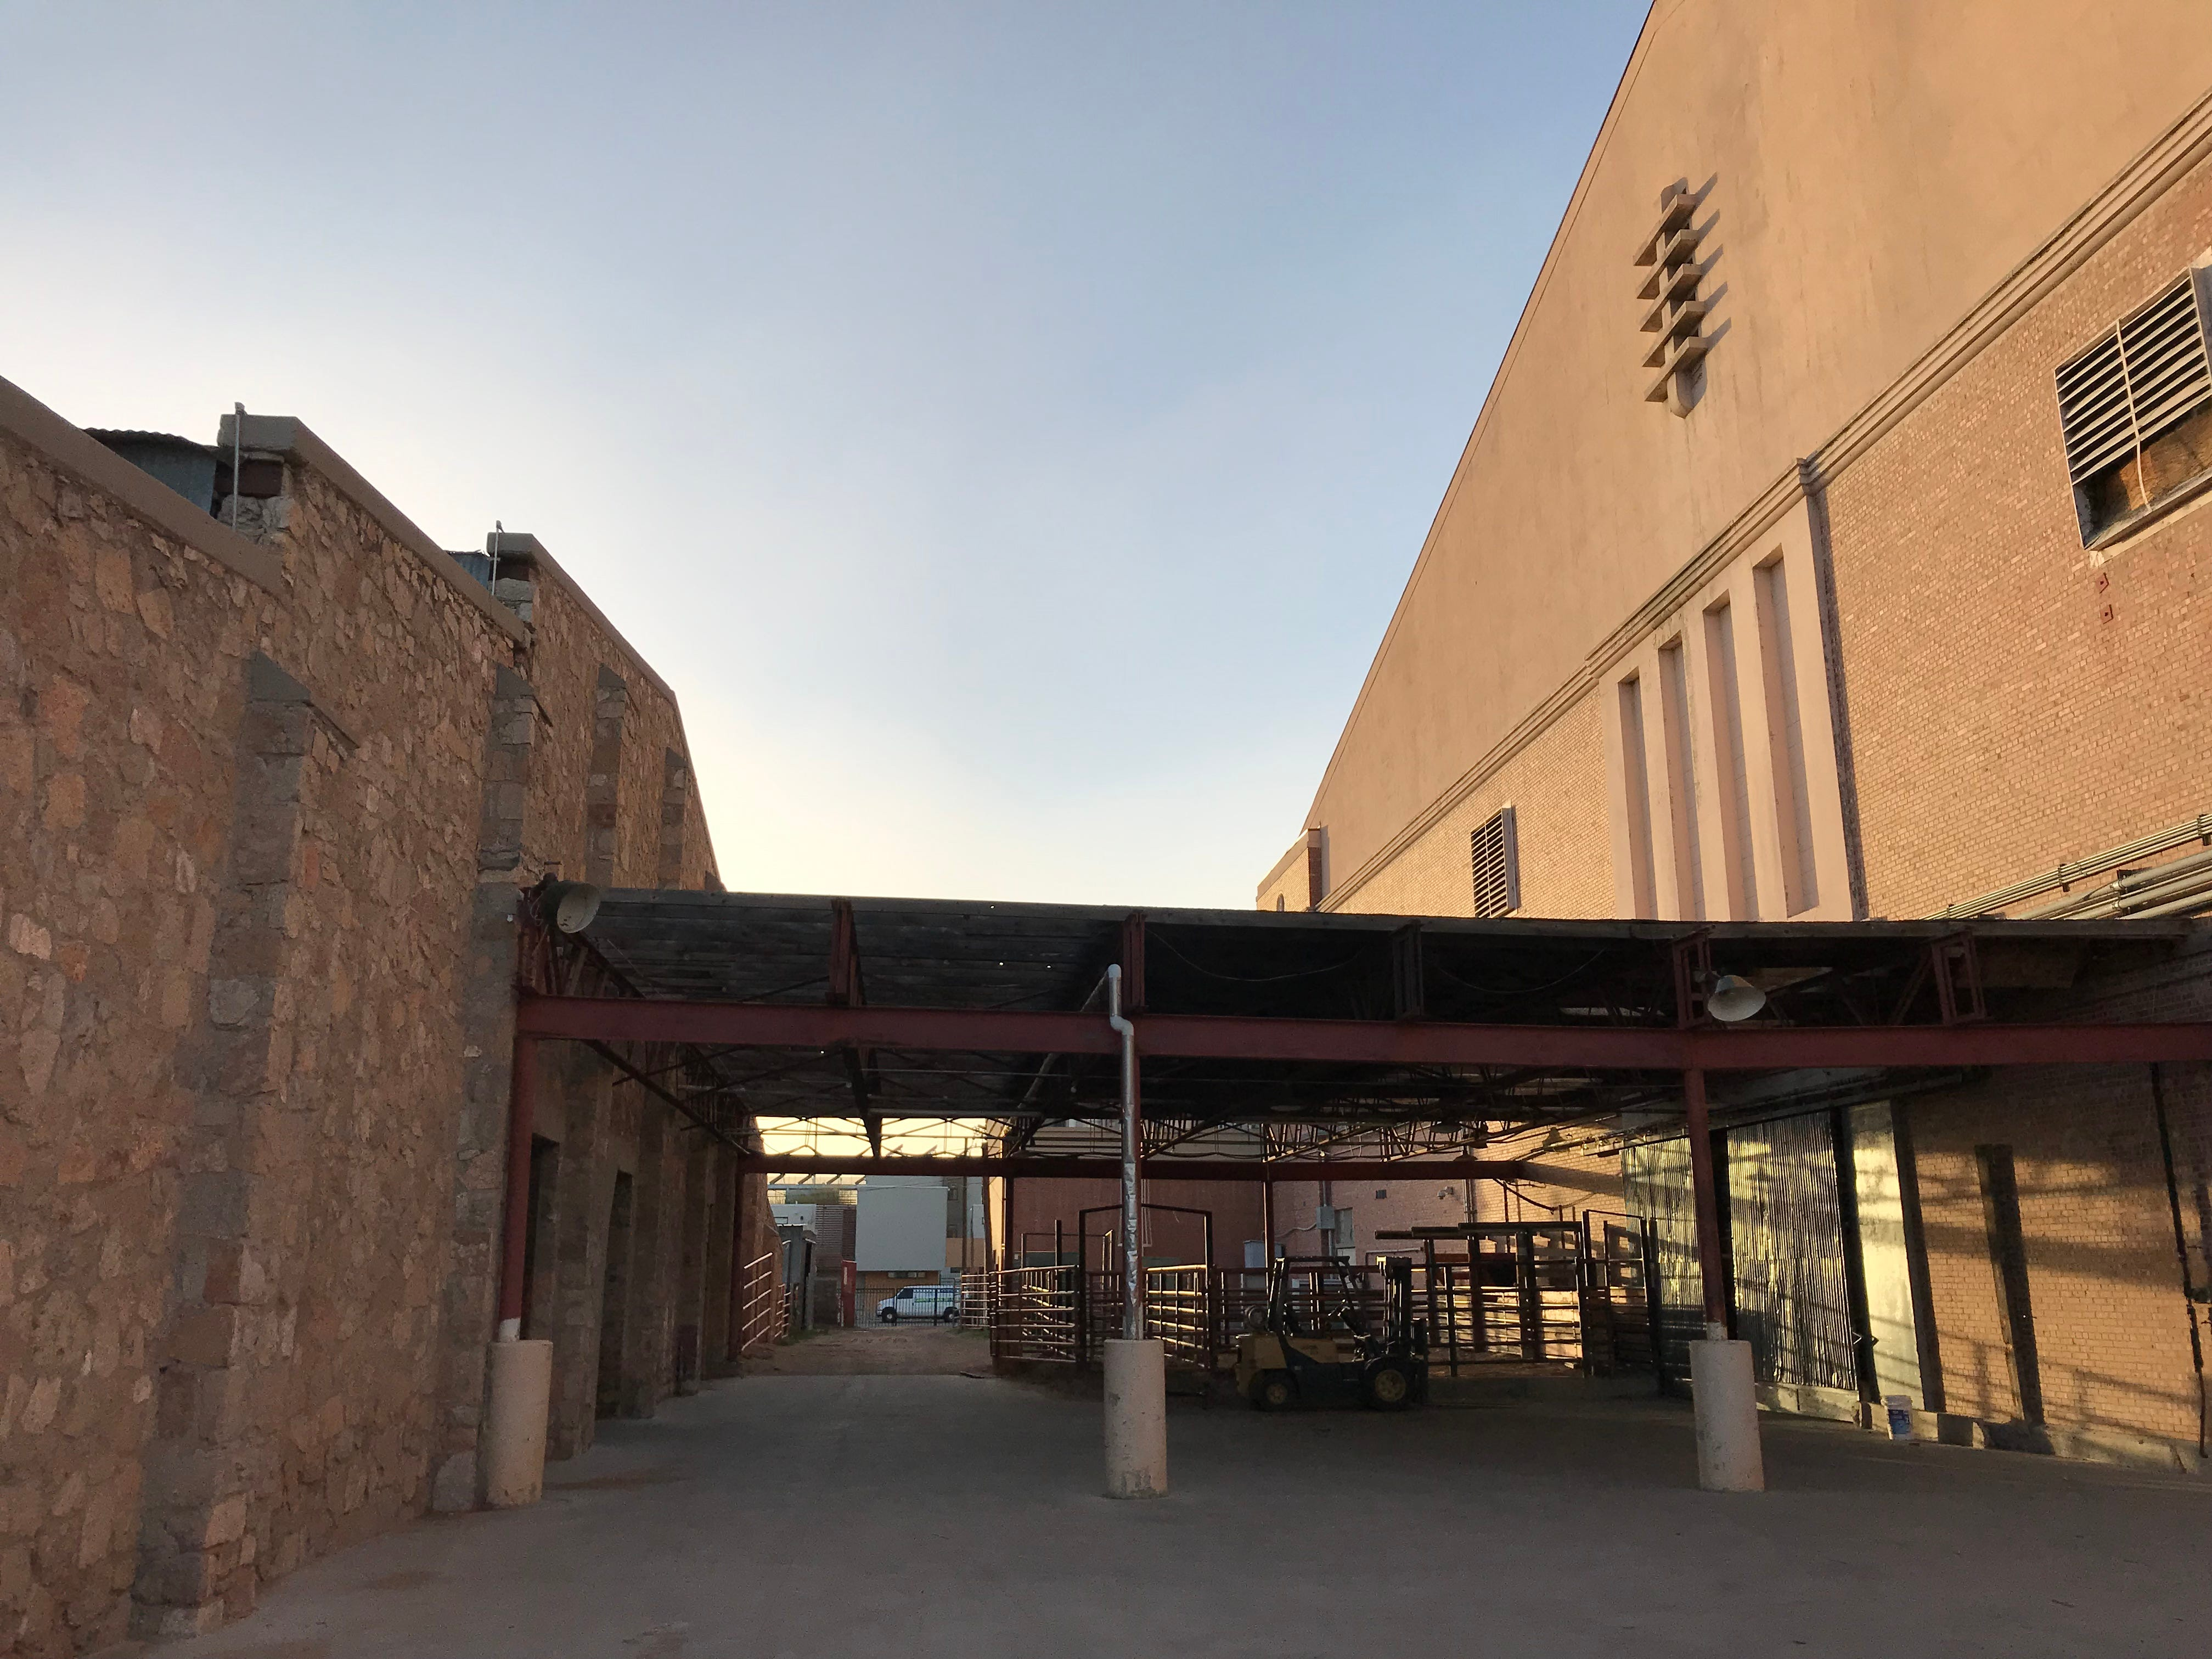 A rock building is connected to the rear of the El Paso County Coliseum by a covered walkway.